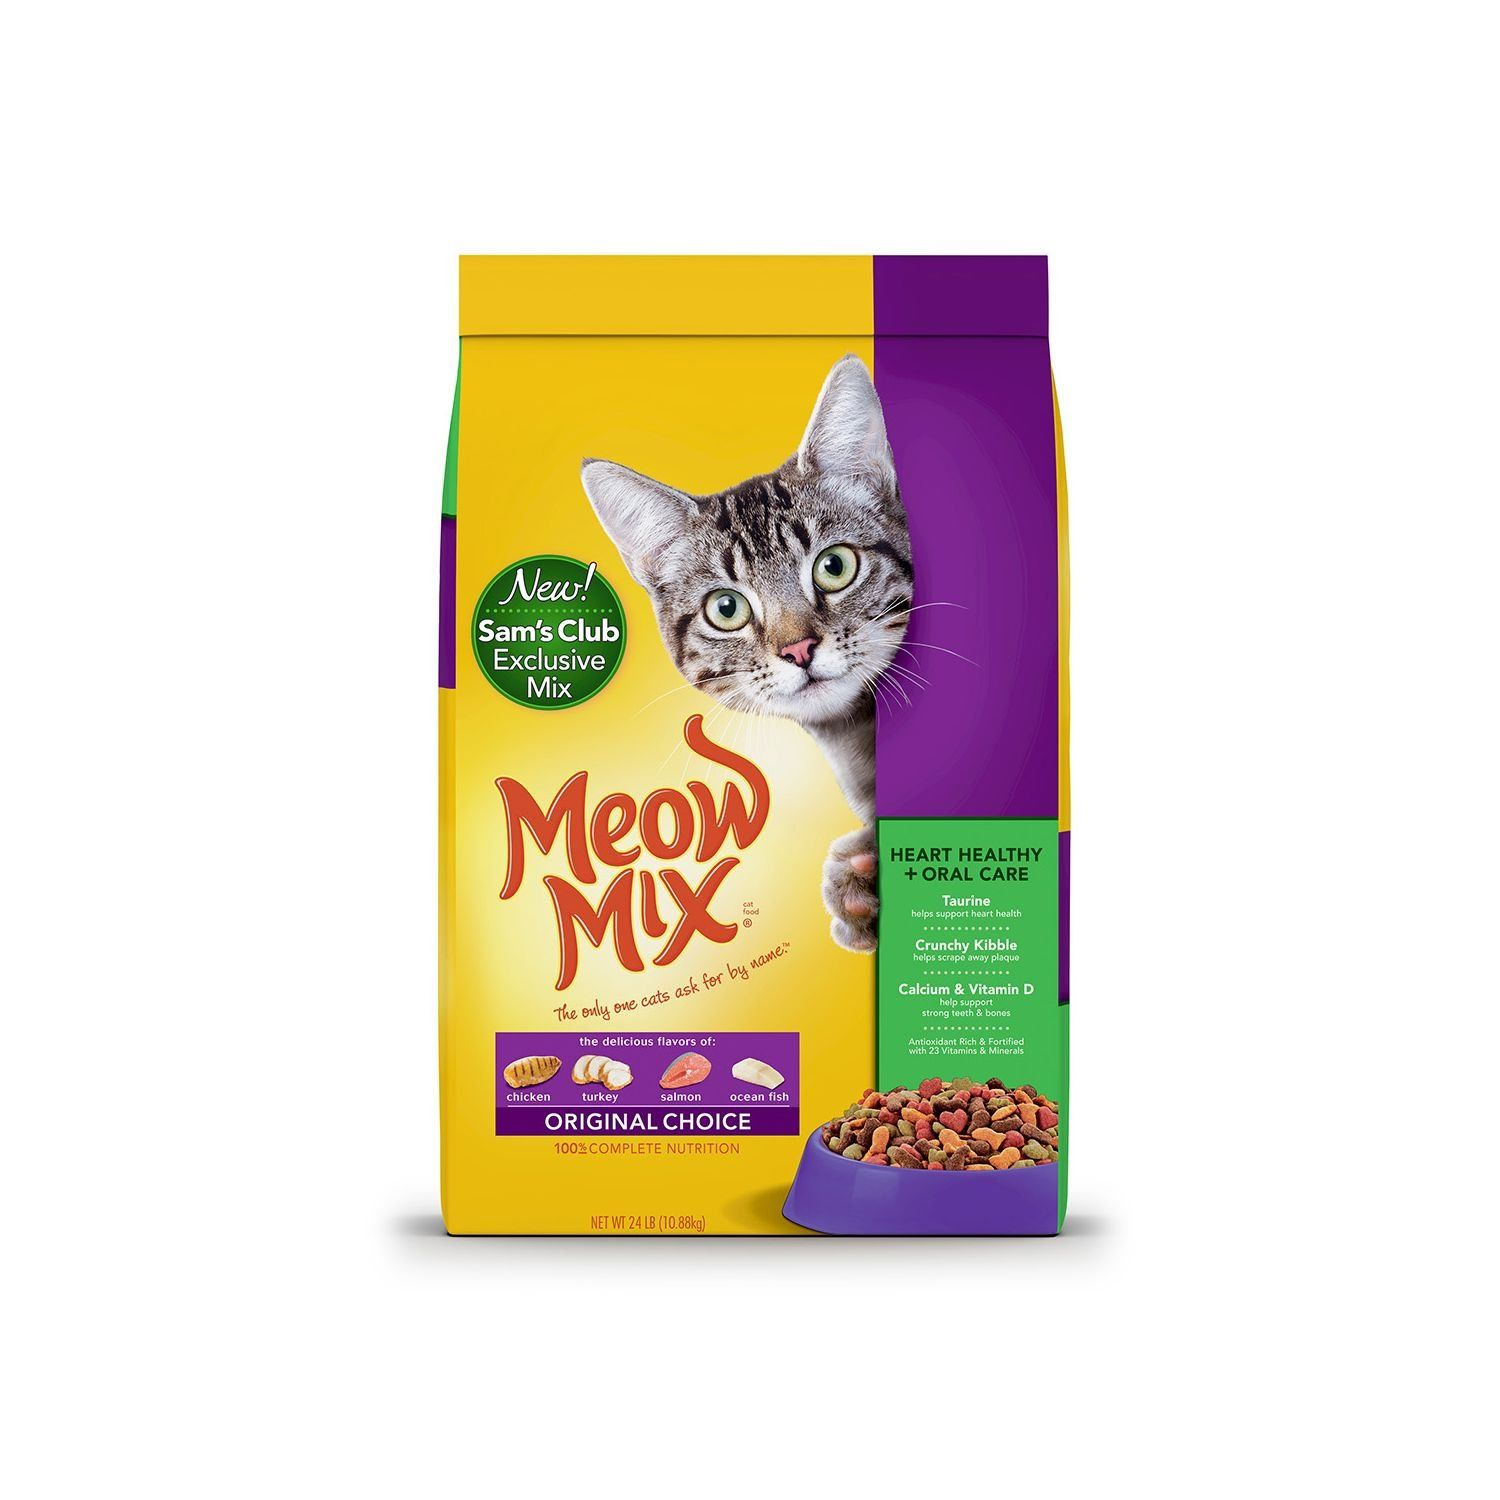 Meow Mix Original Choice Dry Cat Food, Heart Health and